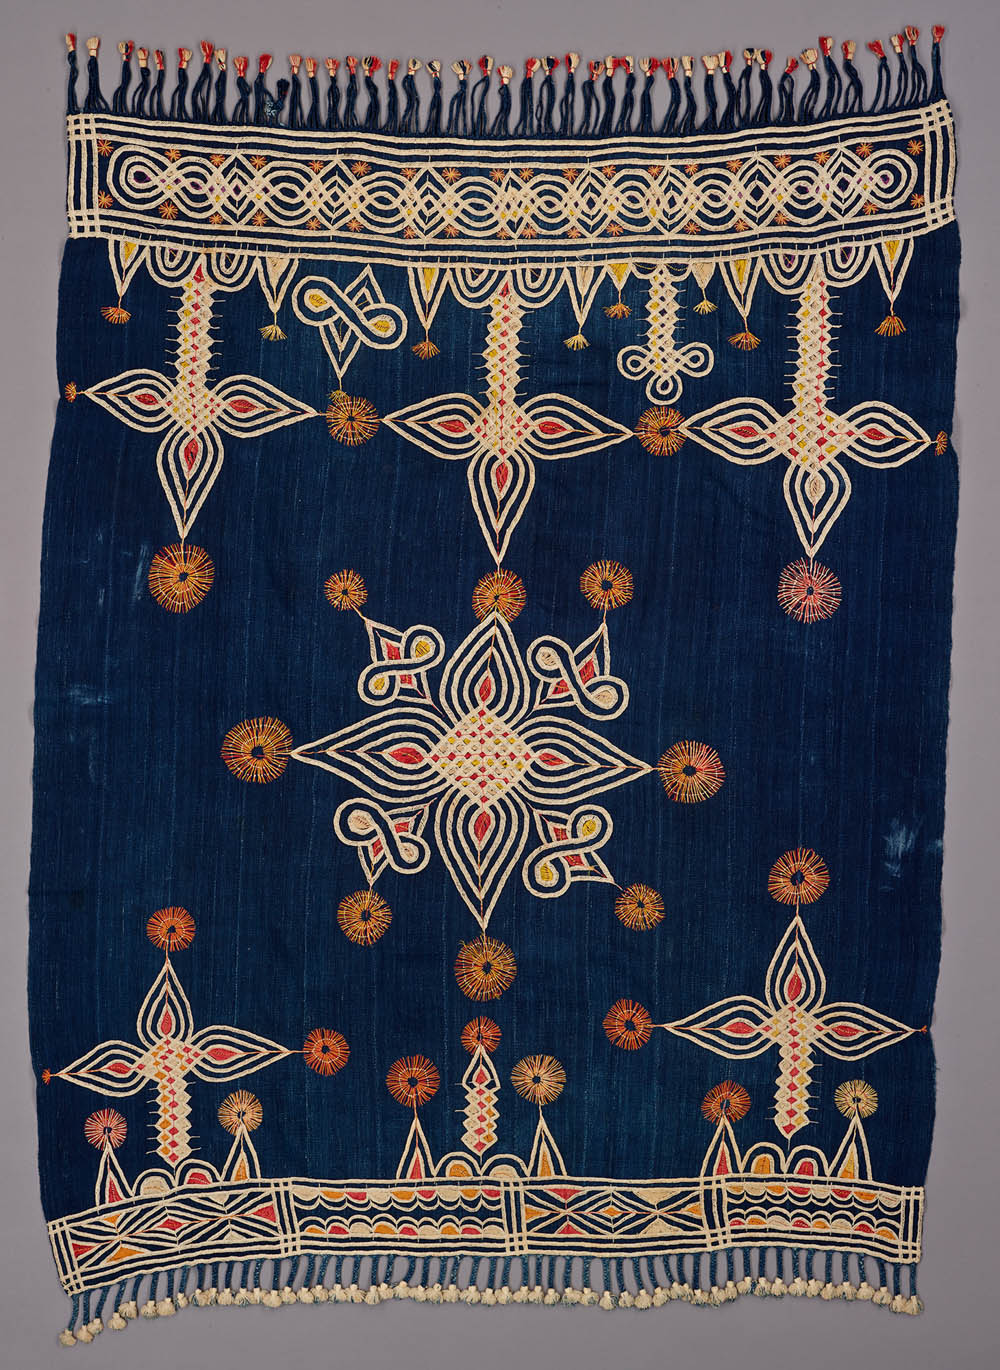 Woman's embroidered shawl